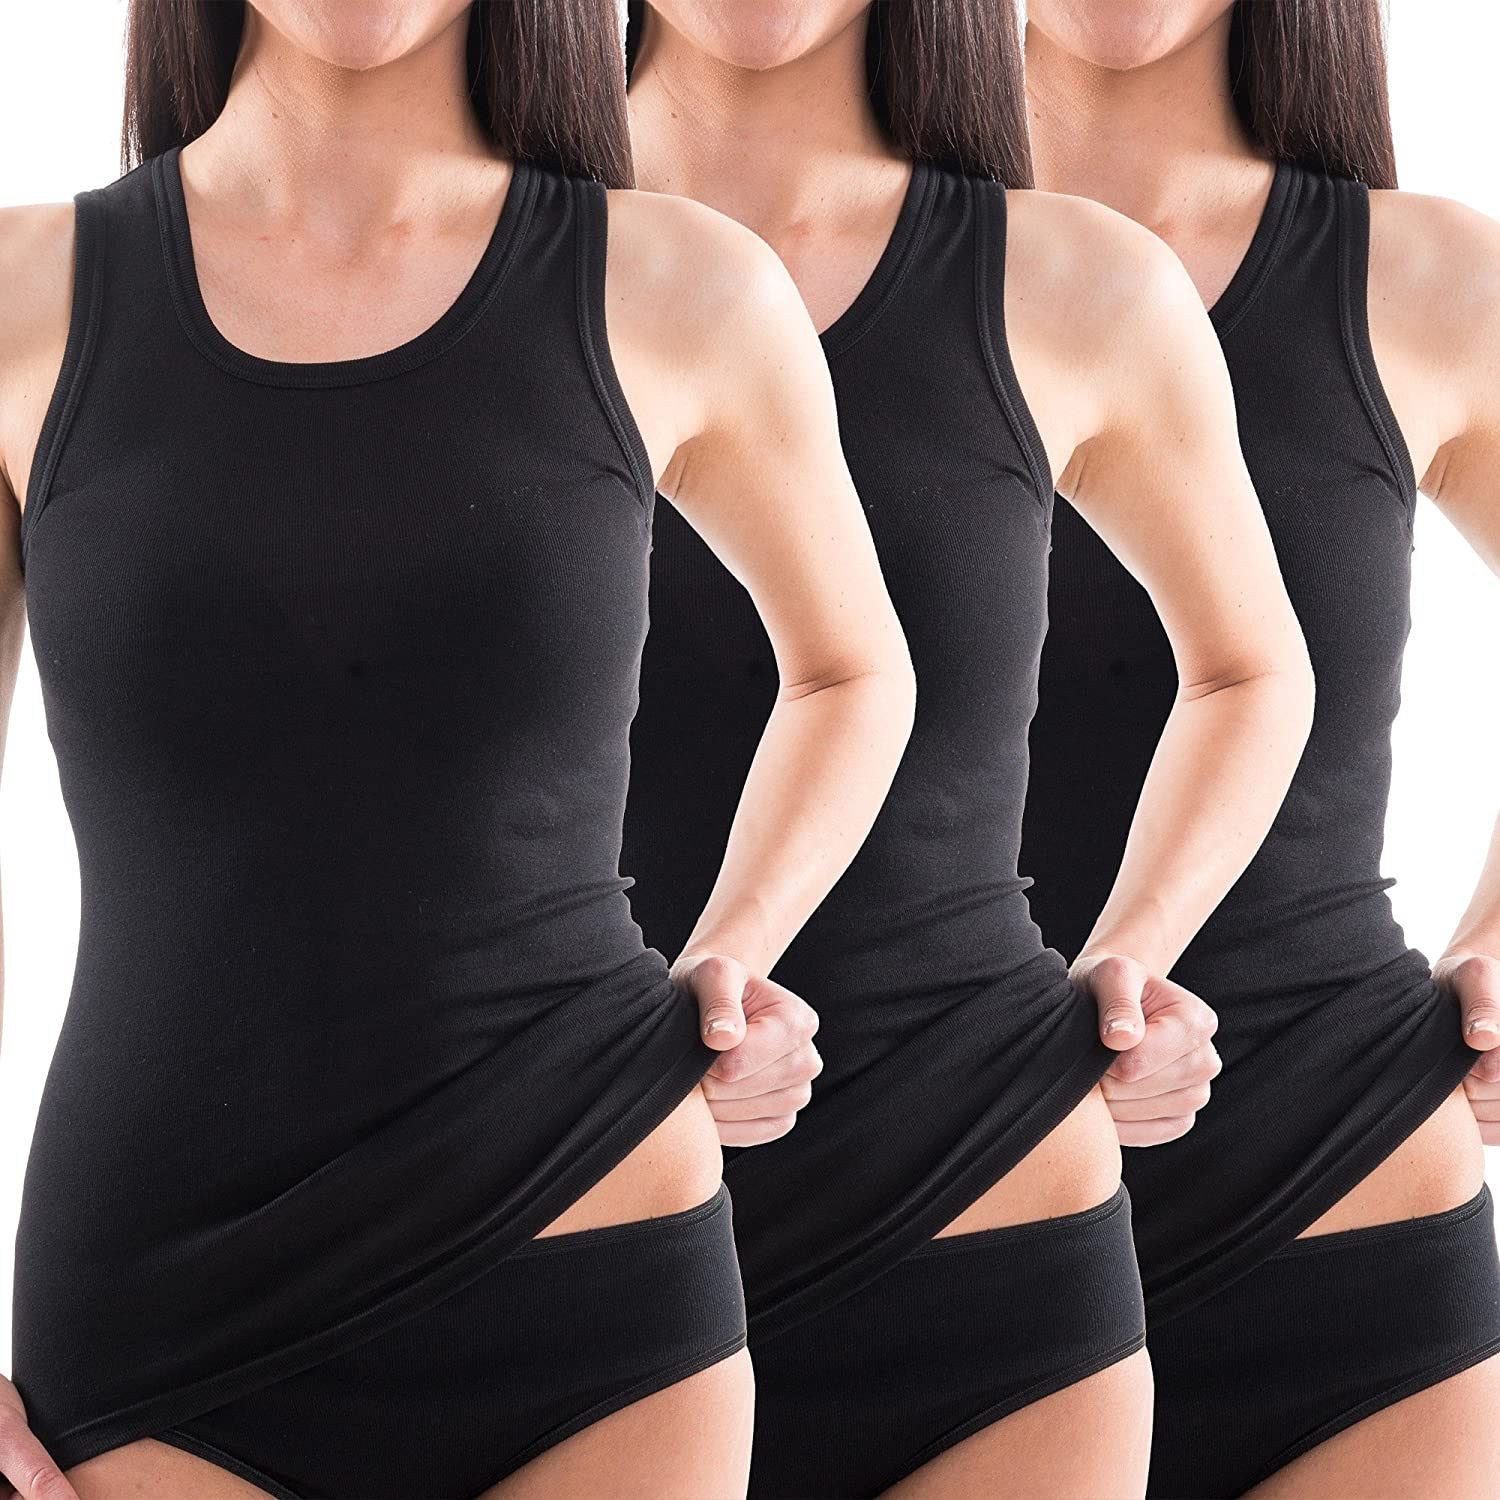 HERMKO 1325 Pack of 3 Womens Long Sleeveless T-Shirt Made of 100/% Cotton Longshirt for Over or Under